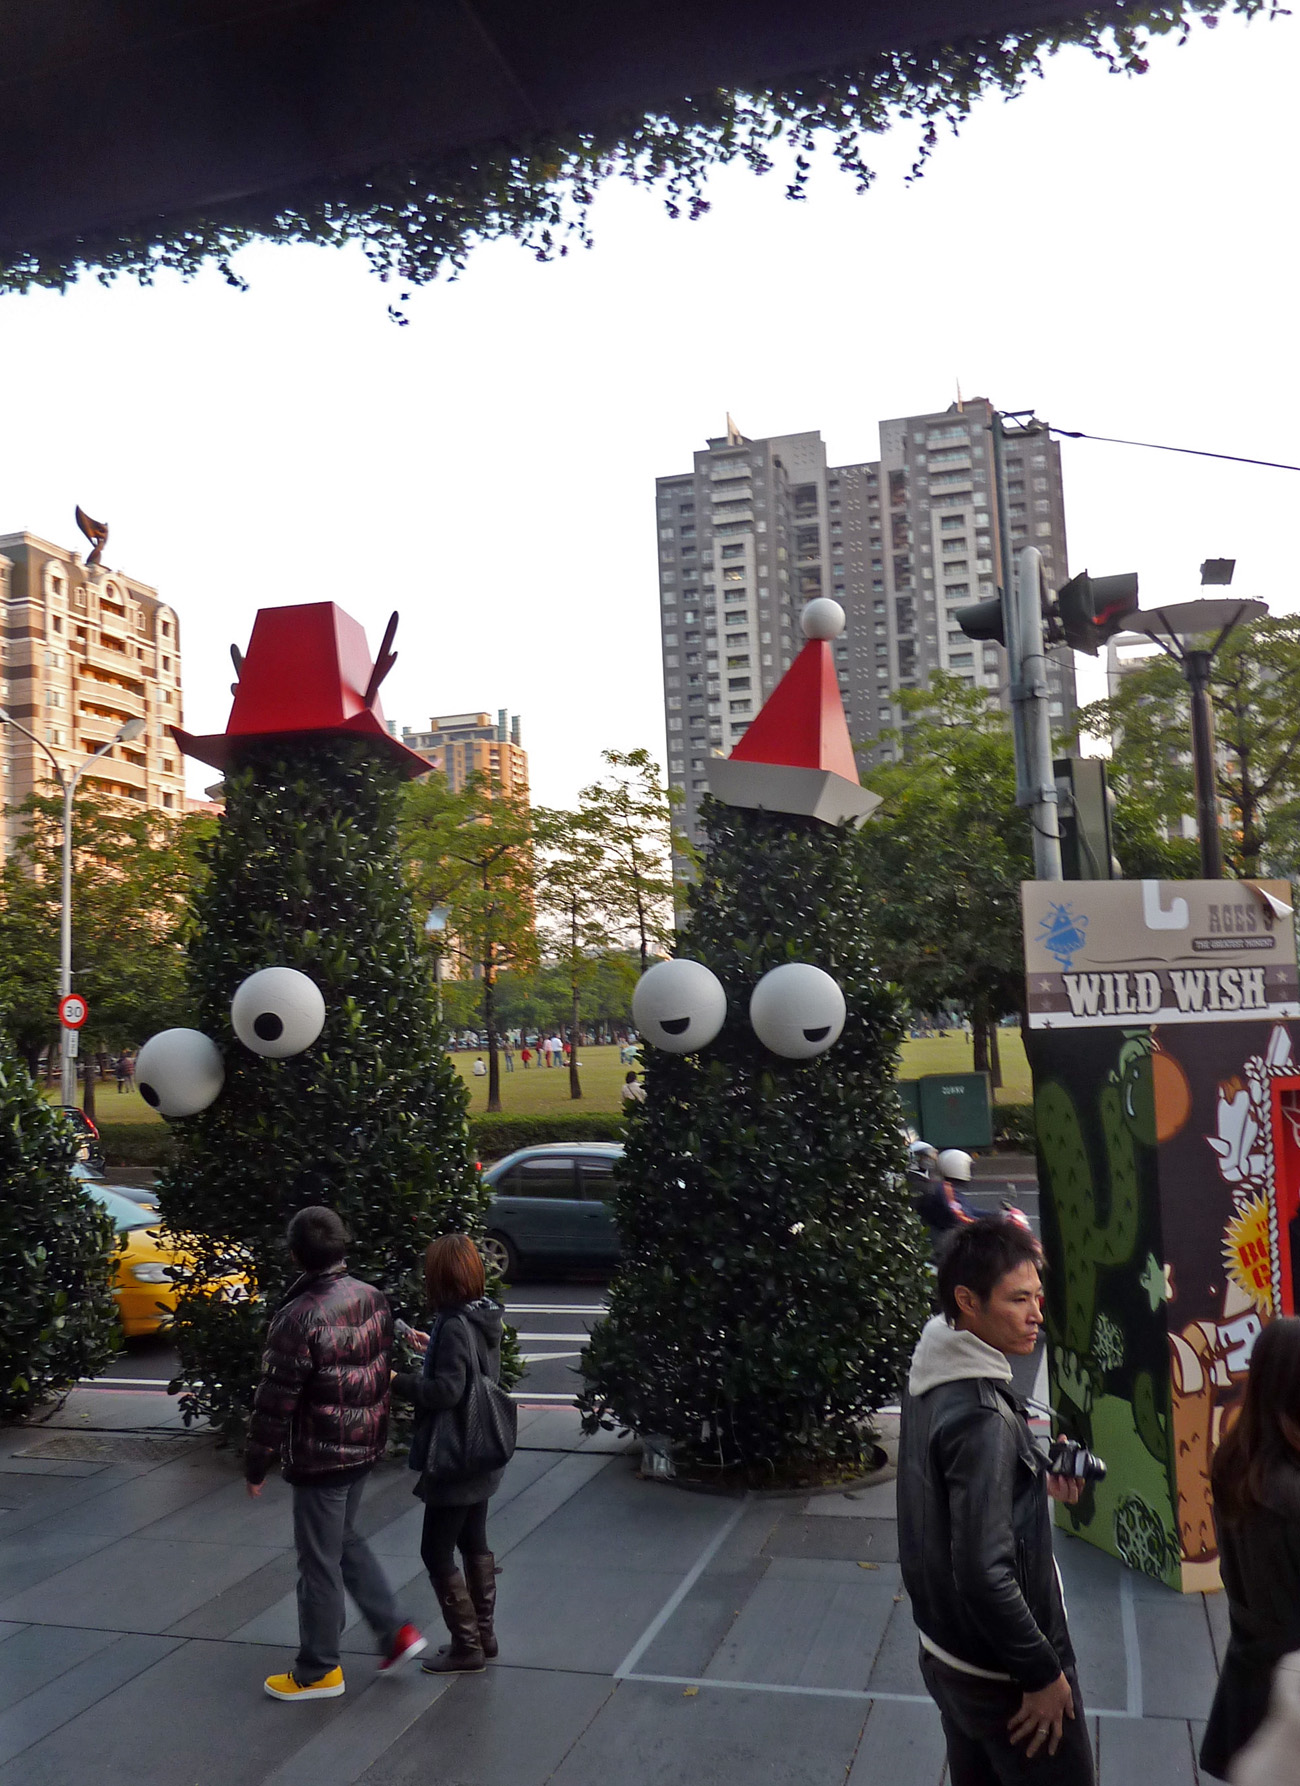 Comic Christmas Trees With Eyes